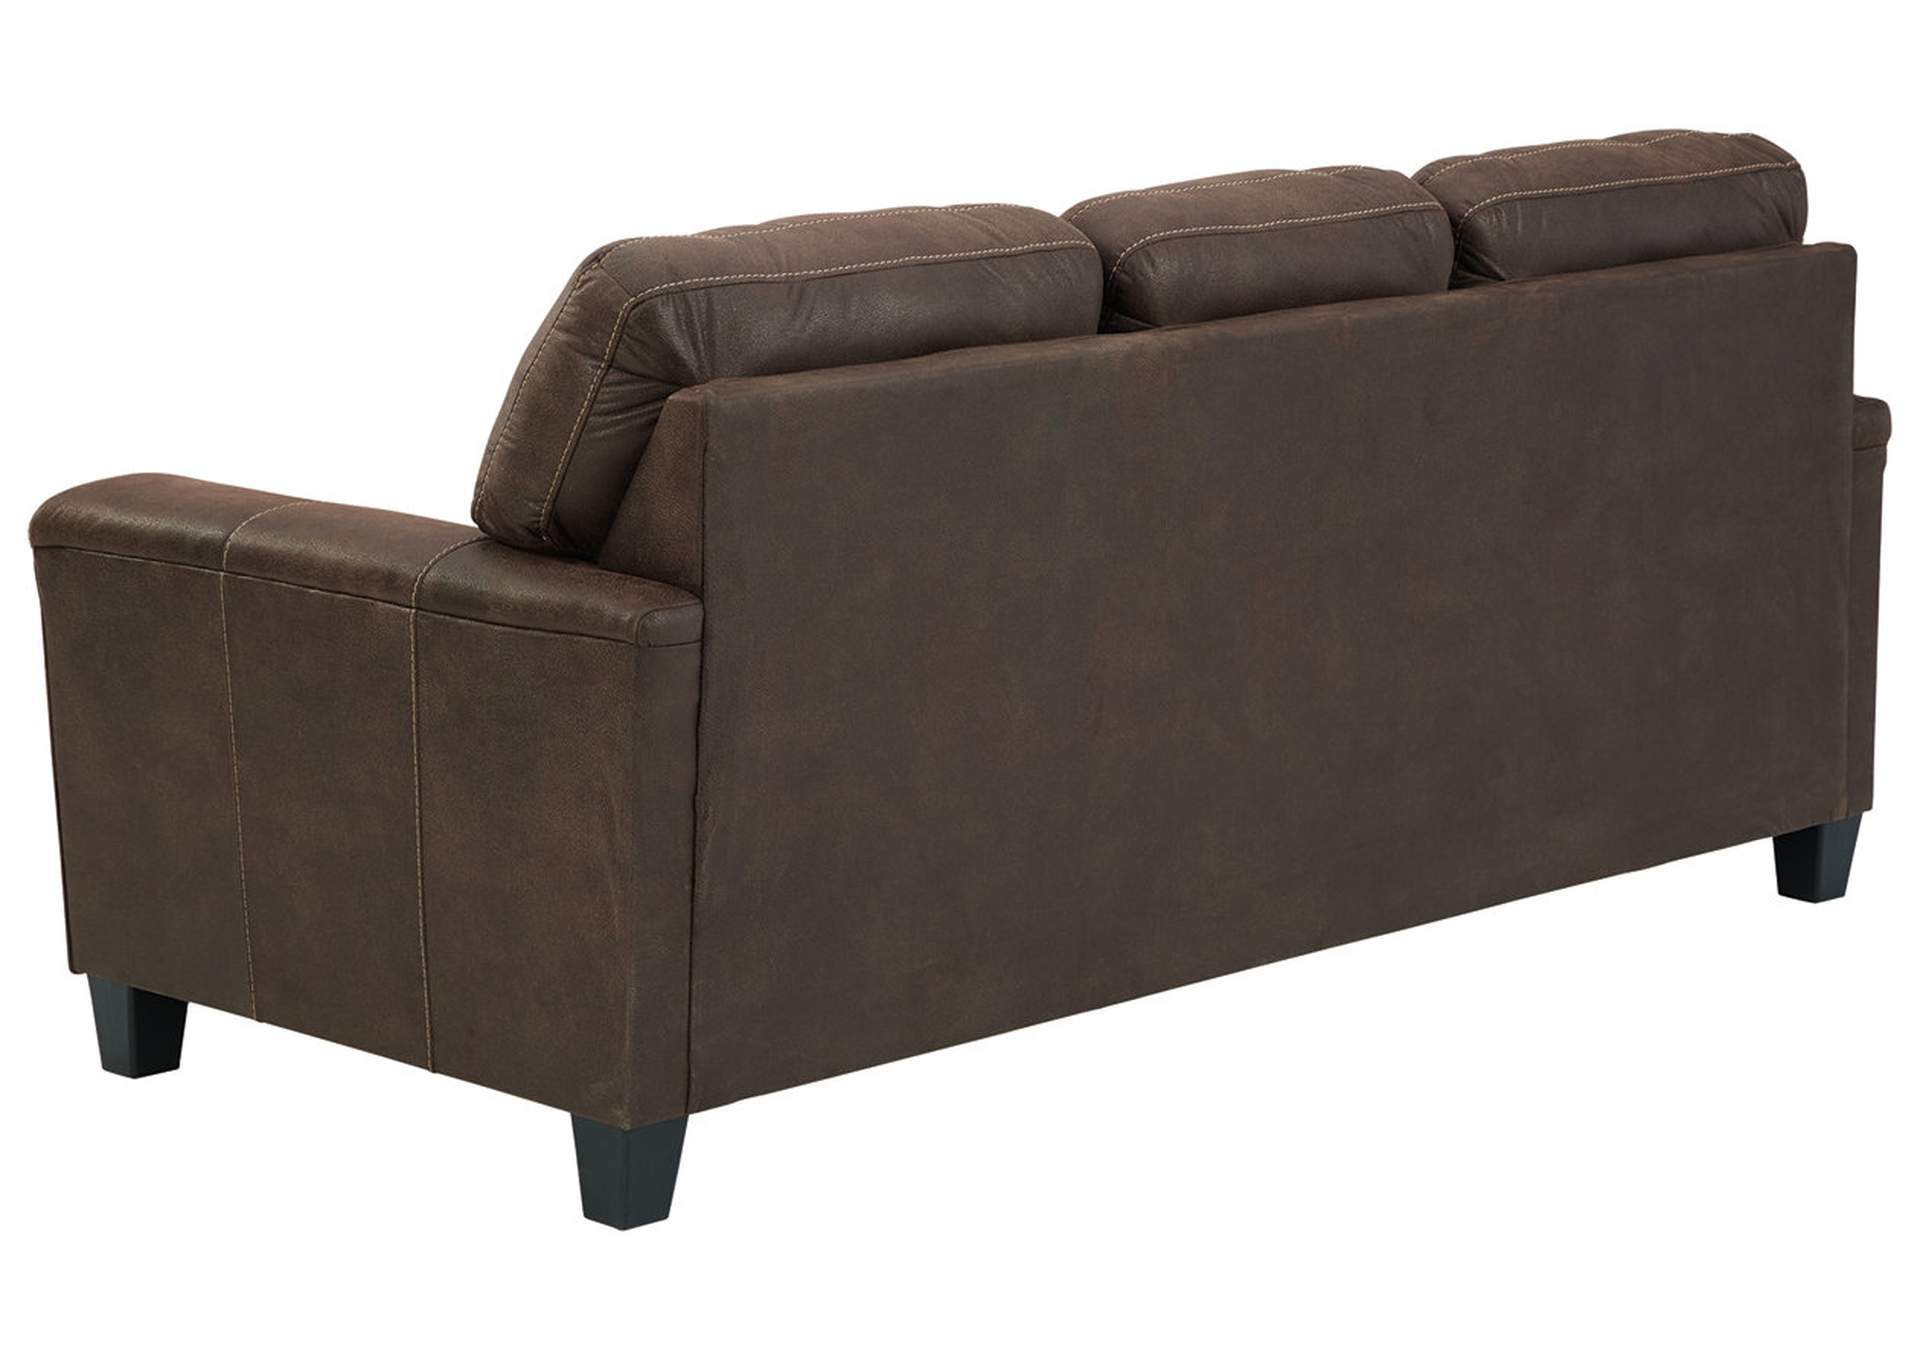 Navi Queen Sofa Sleeper,Signature Design By Ashley